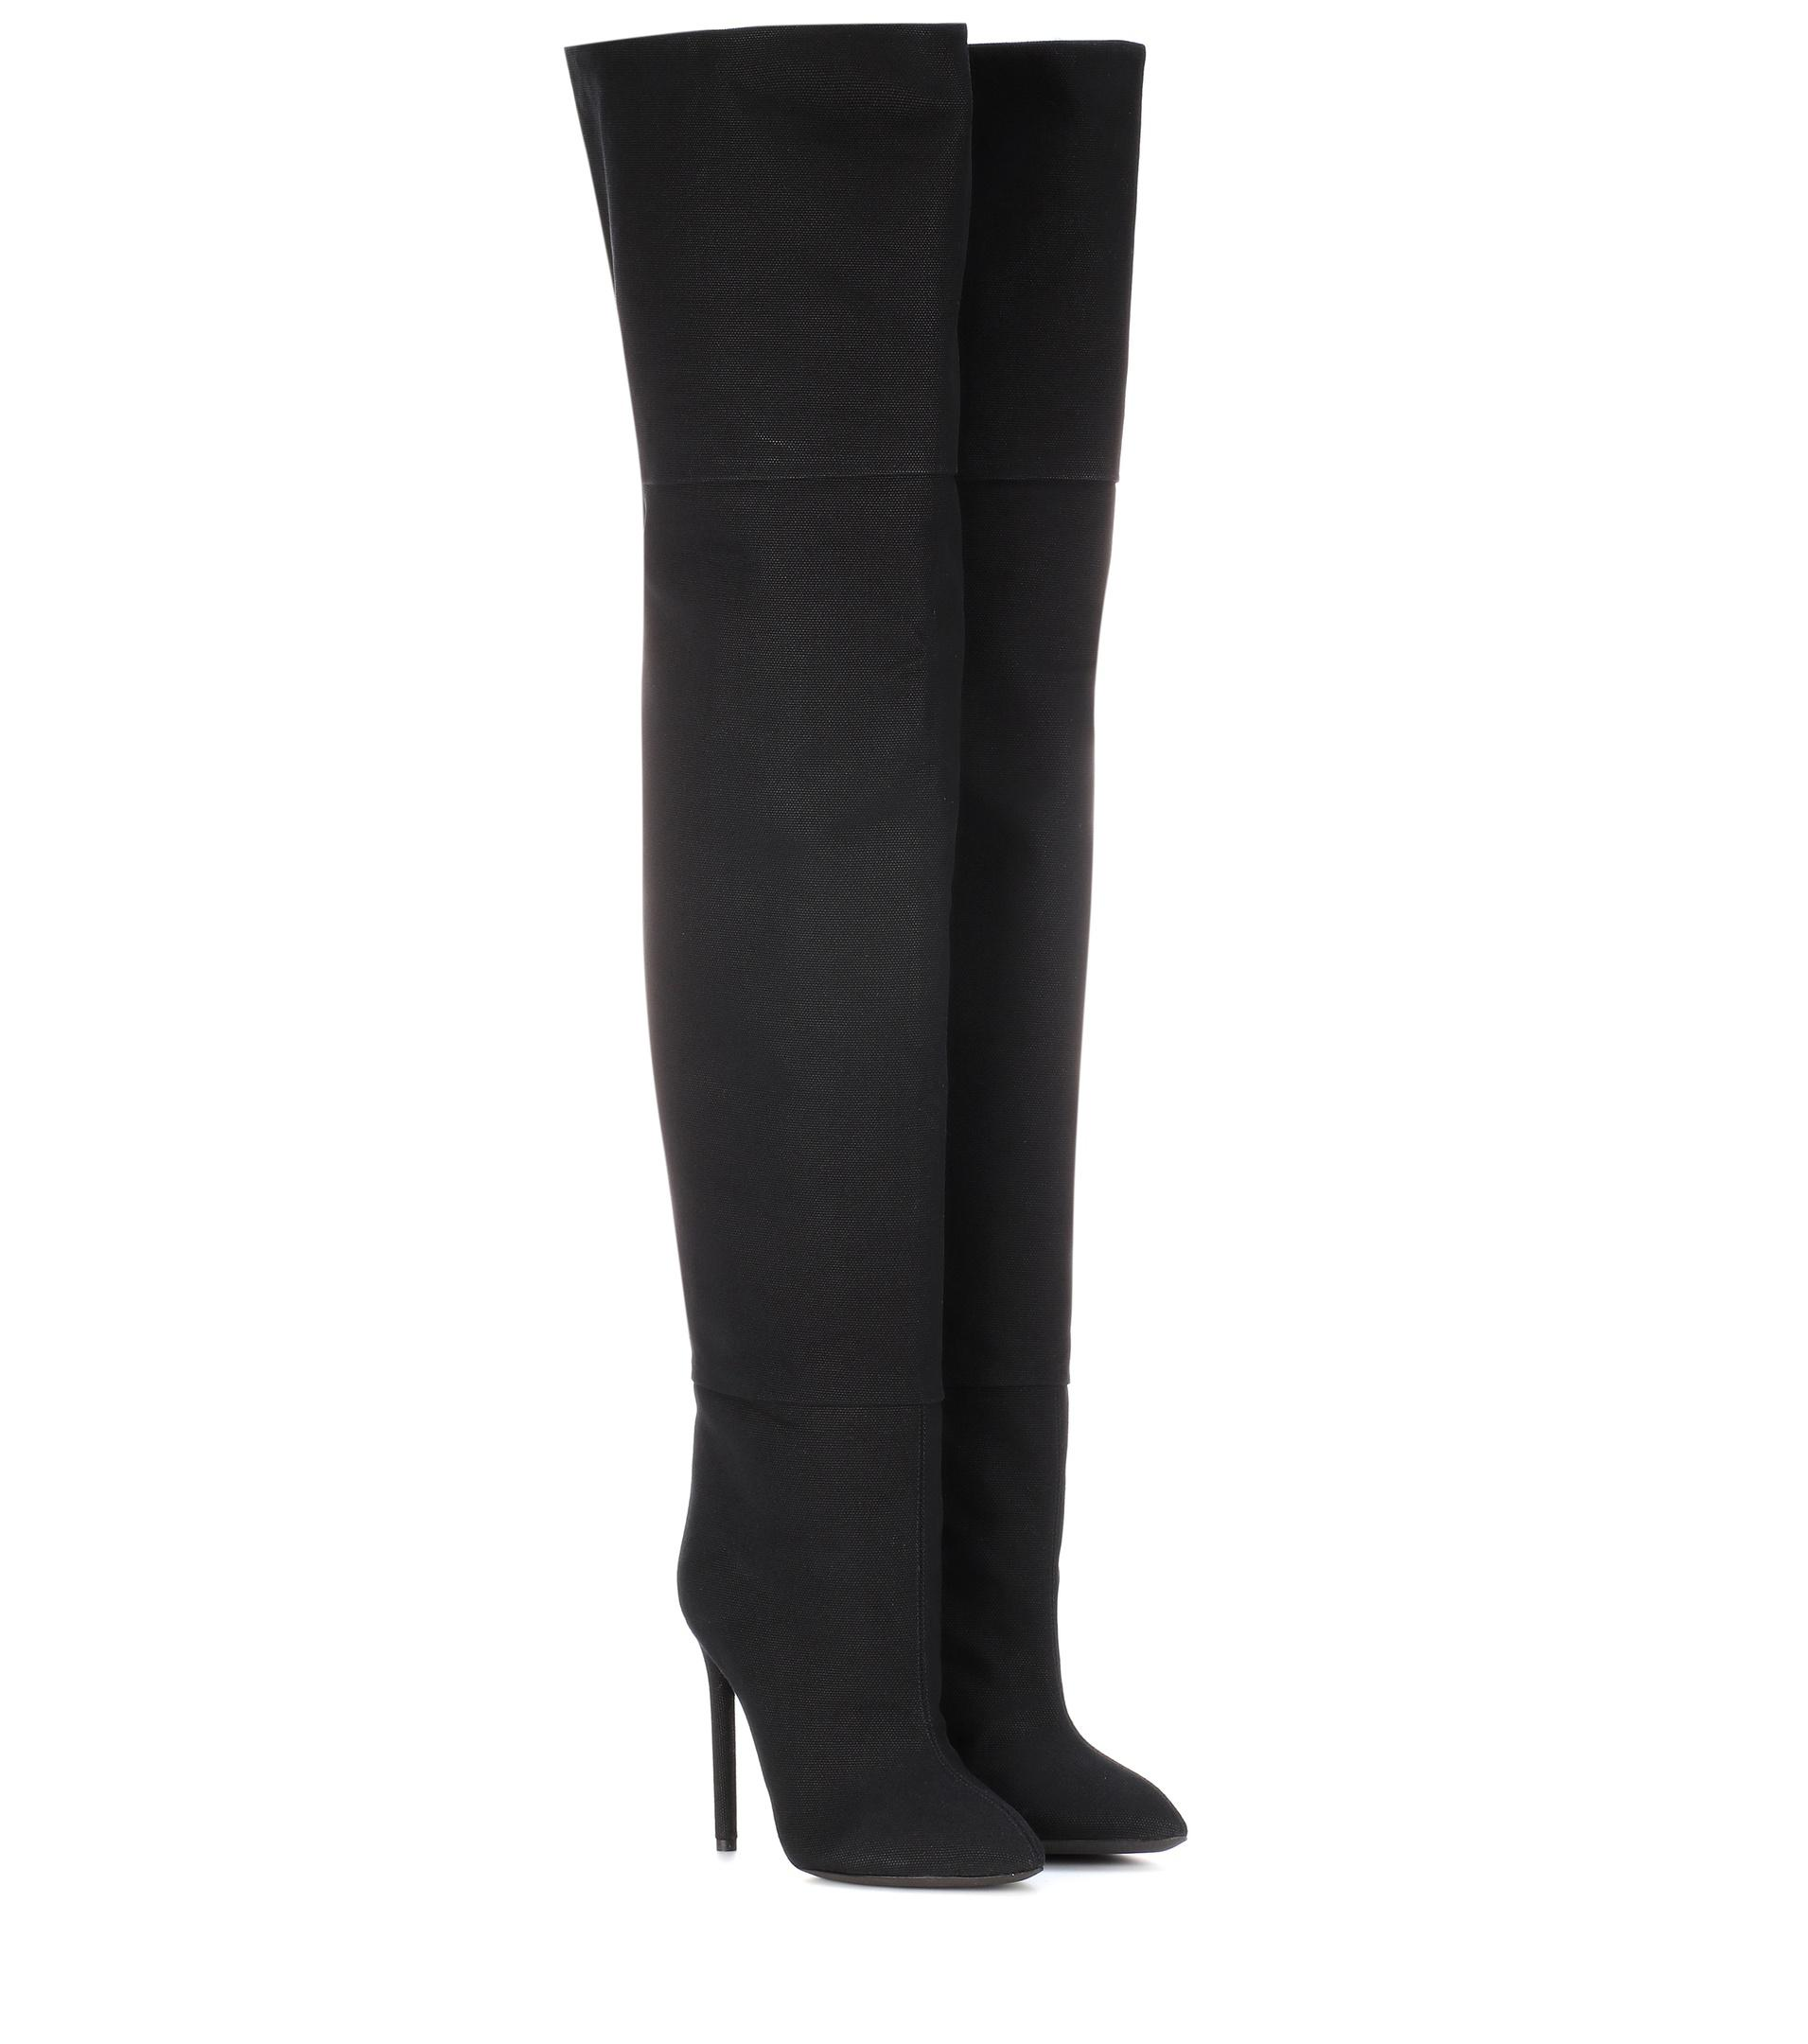 Yeezy Over-the-knee canvas boots (SEASON 4)